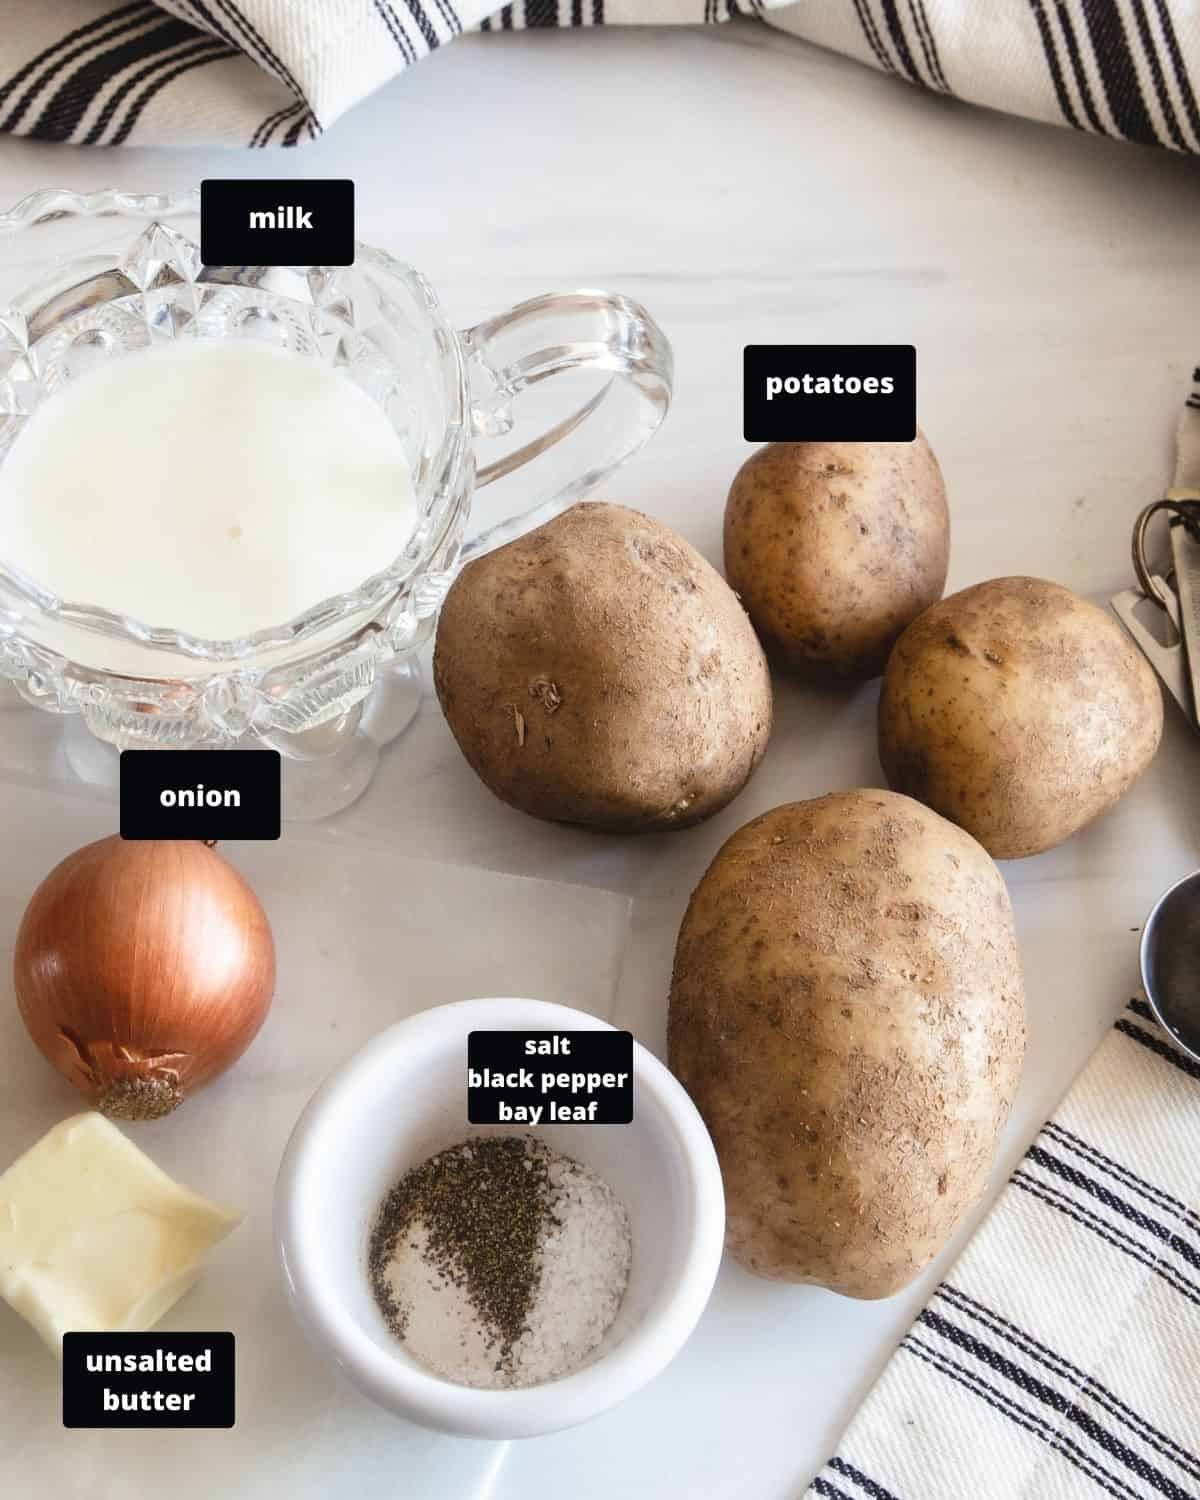 Ingredients to make homemade mashed potatoes - russet potatoes, milk, onion, butter, black pepper, and salt.